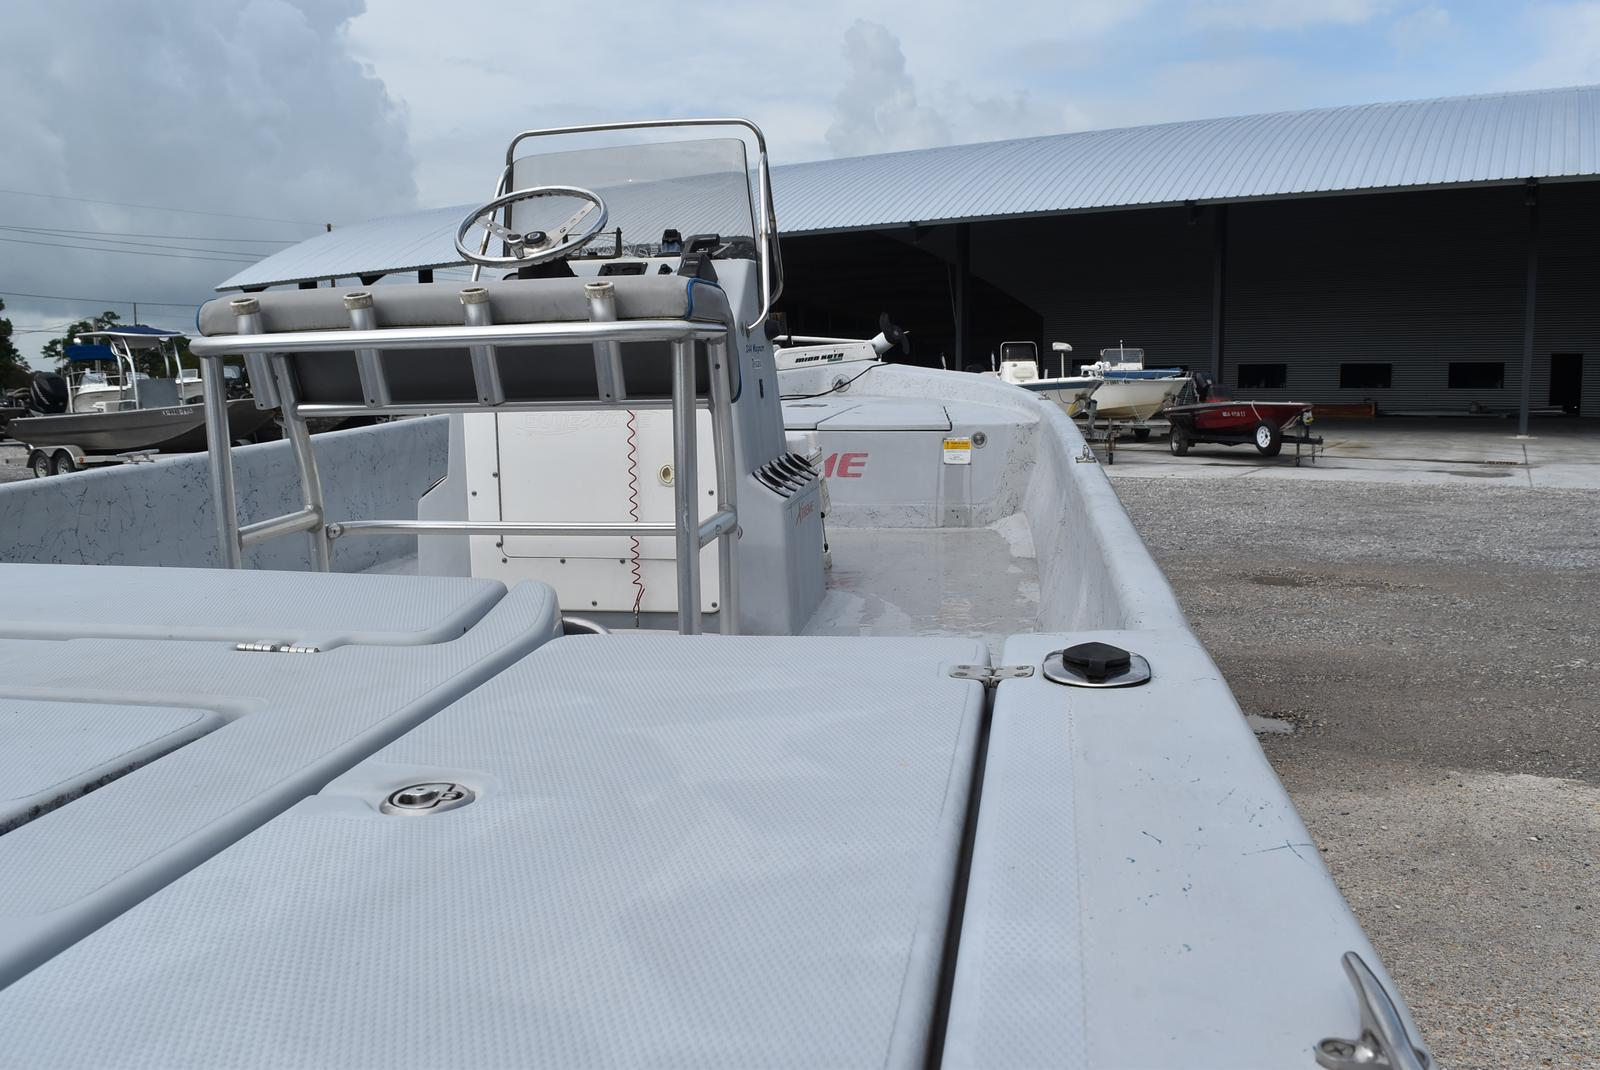 2005 Blue Wave boat for sale, model of the boat is 244 Magnum & Image # 5 of 8